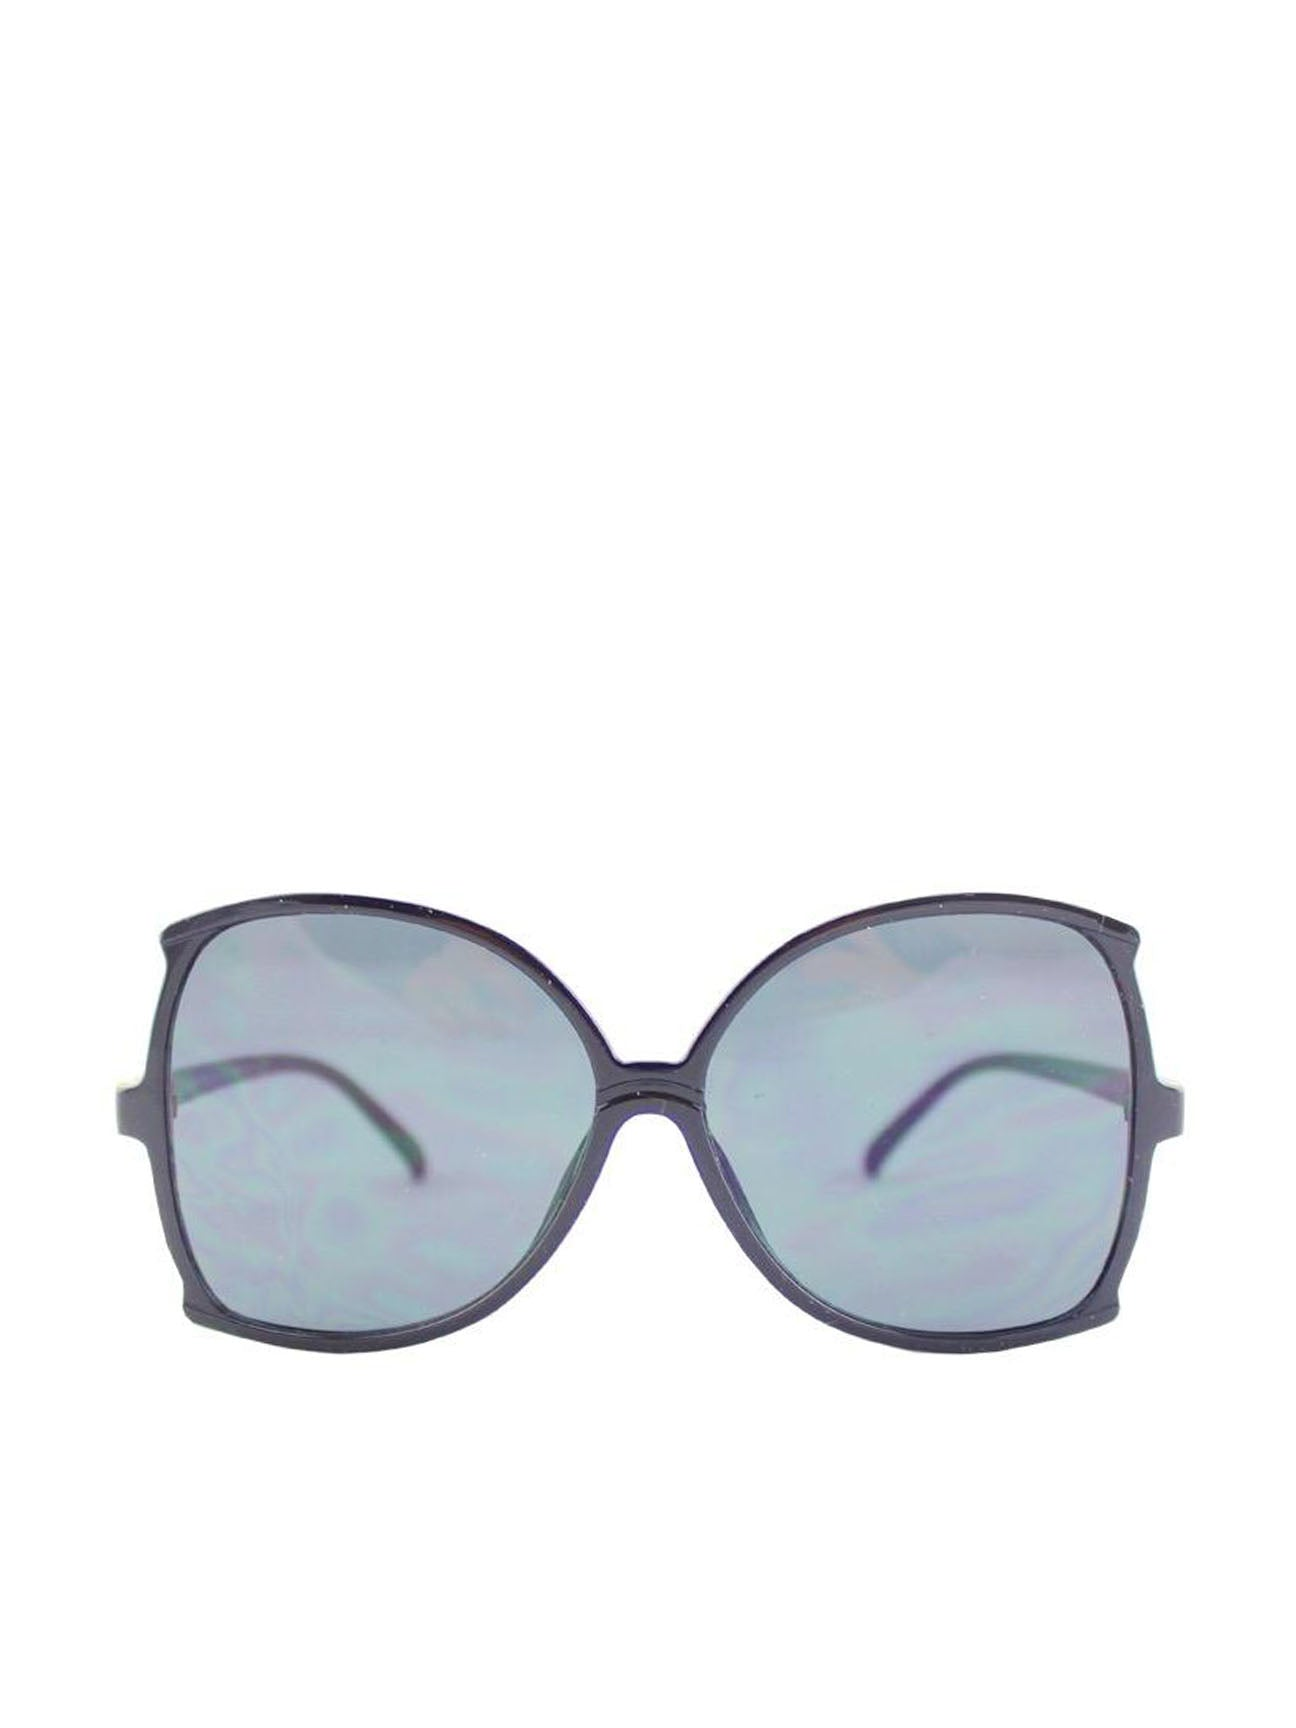 Oversized Exaggerated Sunglasses With Black frame